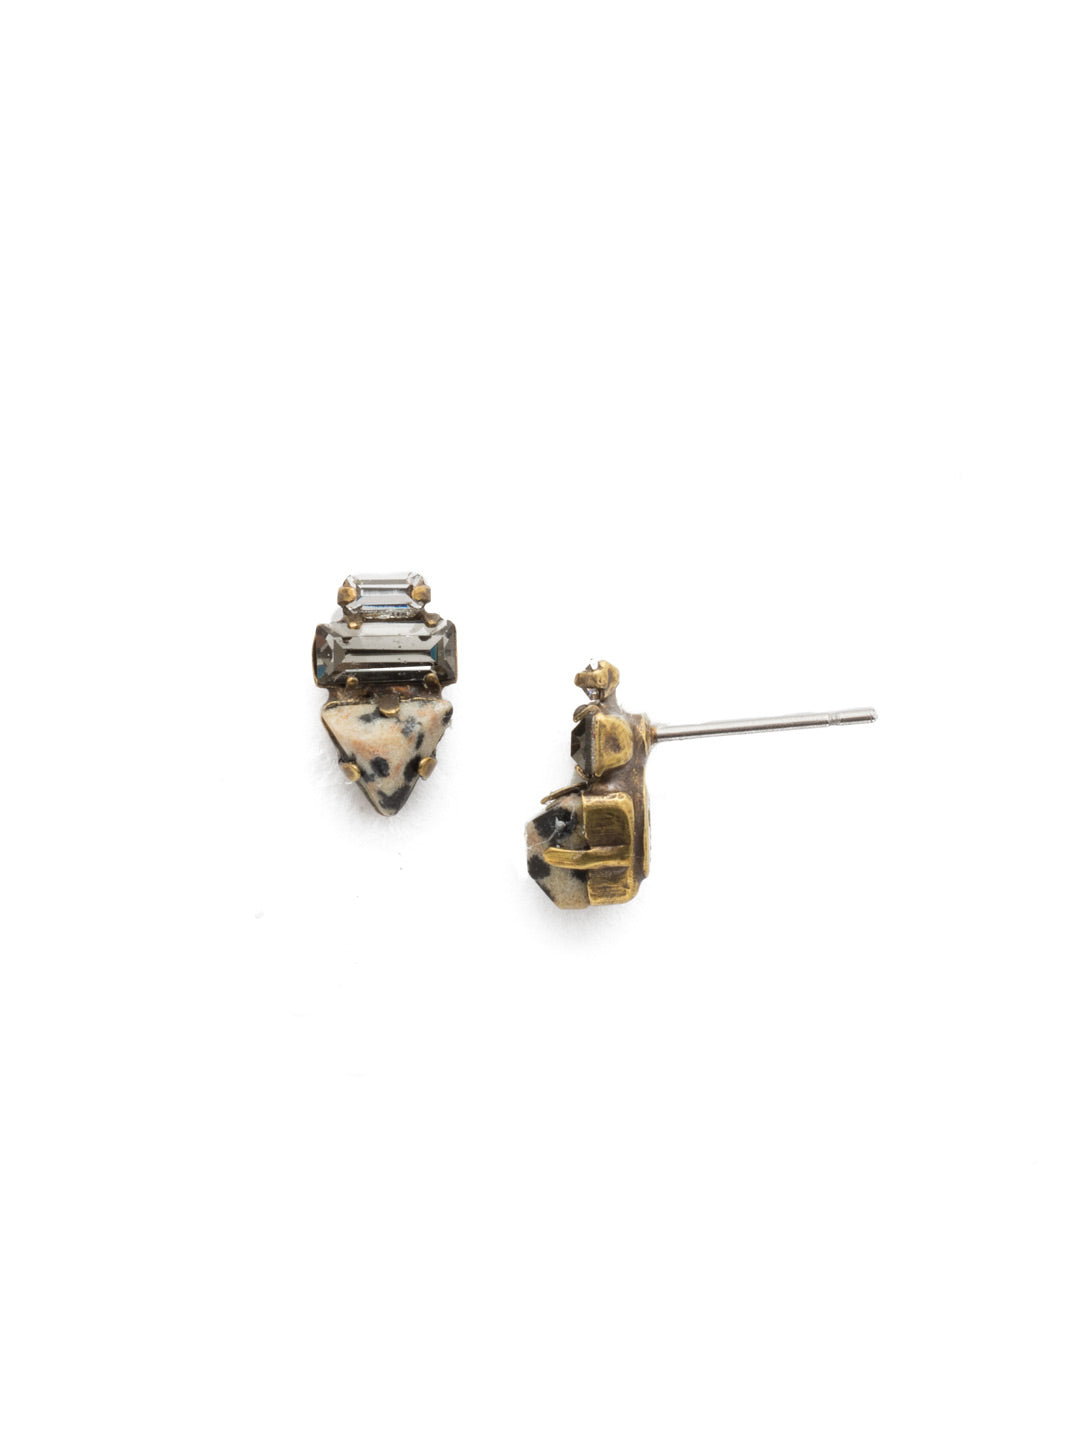 Triple Stack Stud Earrings - EDN104AGNEL